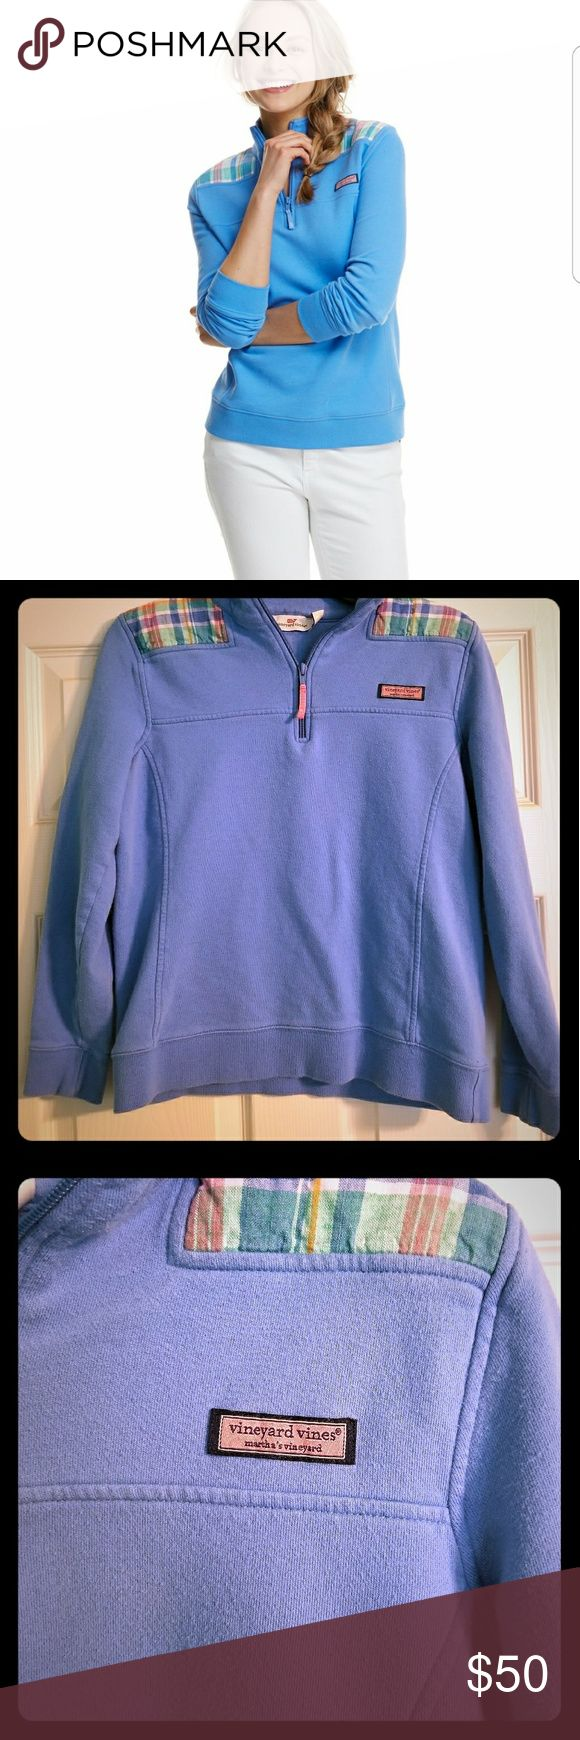 Periwinkle Vineyard Vines Shep Shirt A gorgeous periwinkle blue Vineyard Vines Shep Shirt. Worn only a couple times, although there is slight pilling. The shirt is not quite as bright of a blue as the model shows. Vineyard Vines Tops Sweatshirts & Hoodies